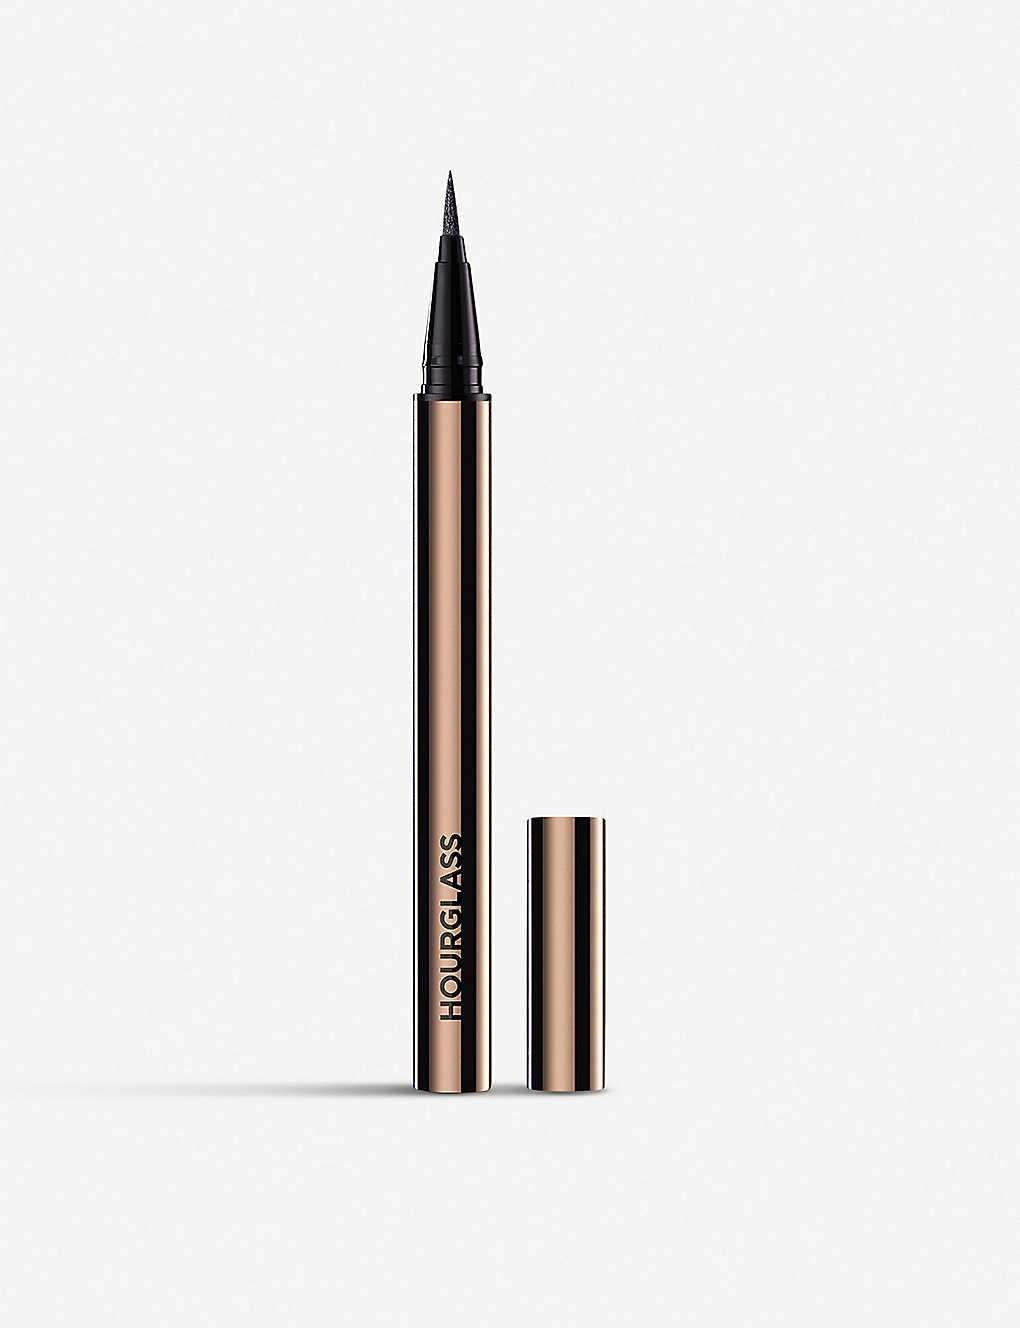 HOURGLASS: Voyeur Waterproof Liquid Liner